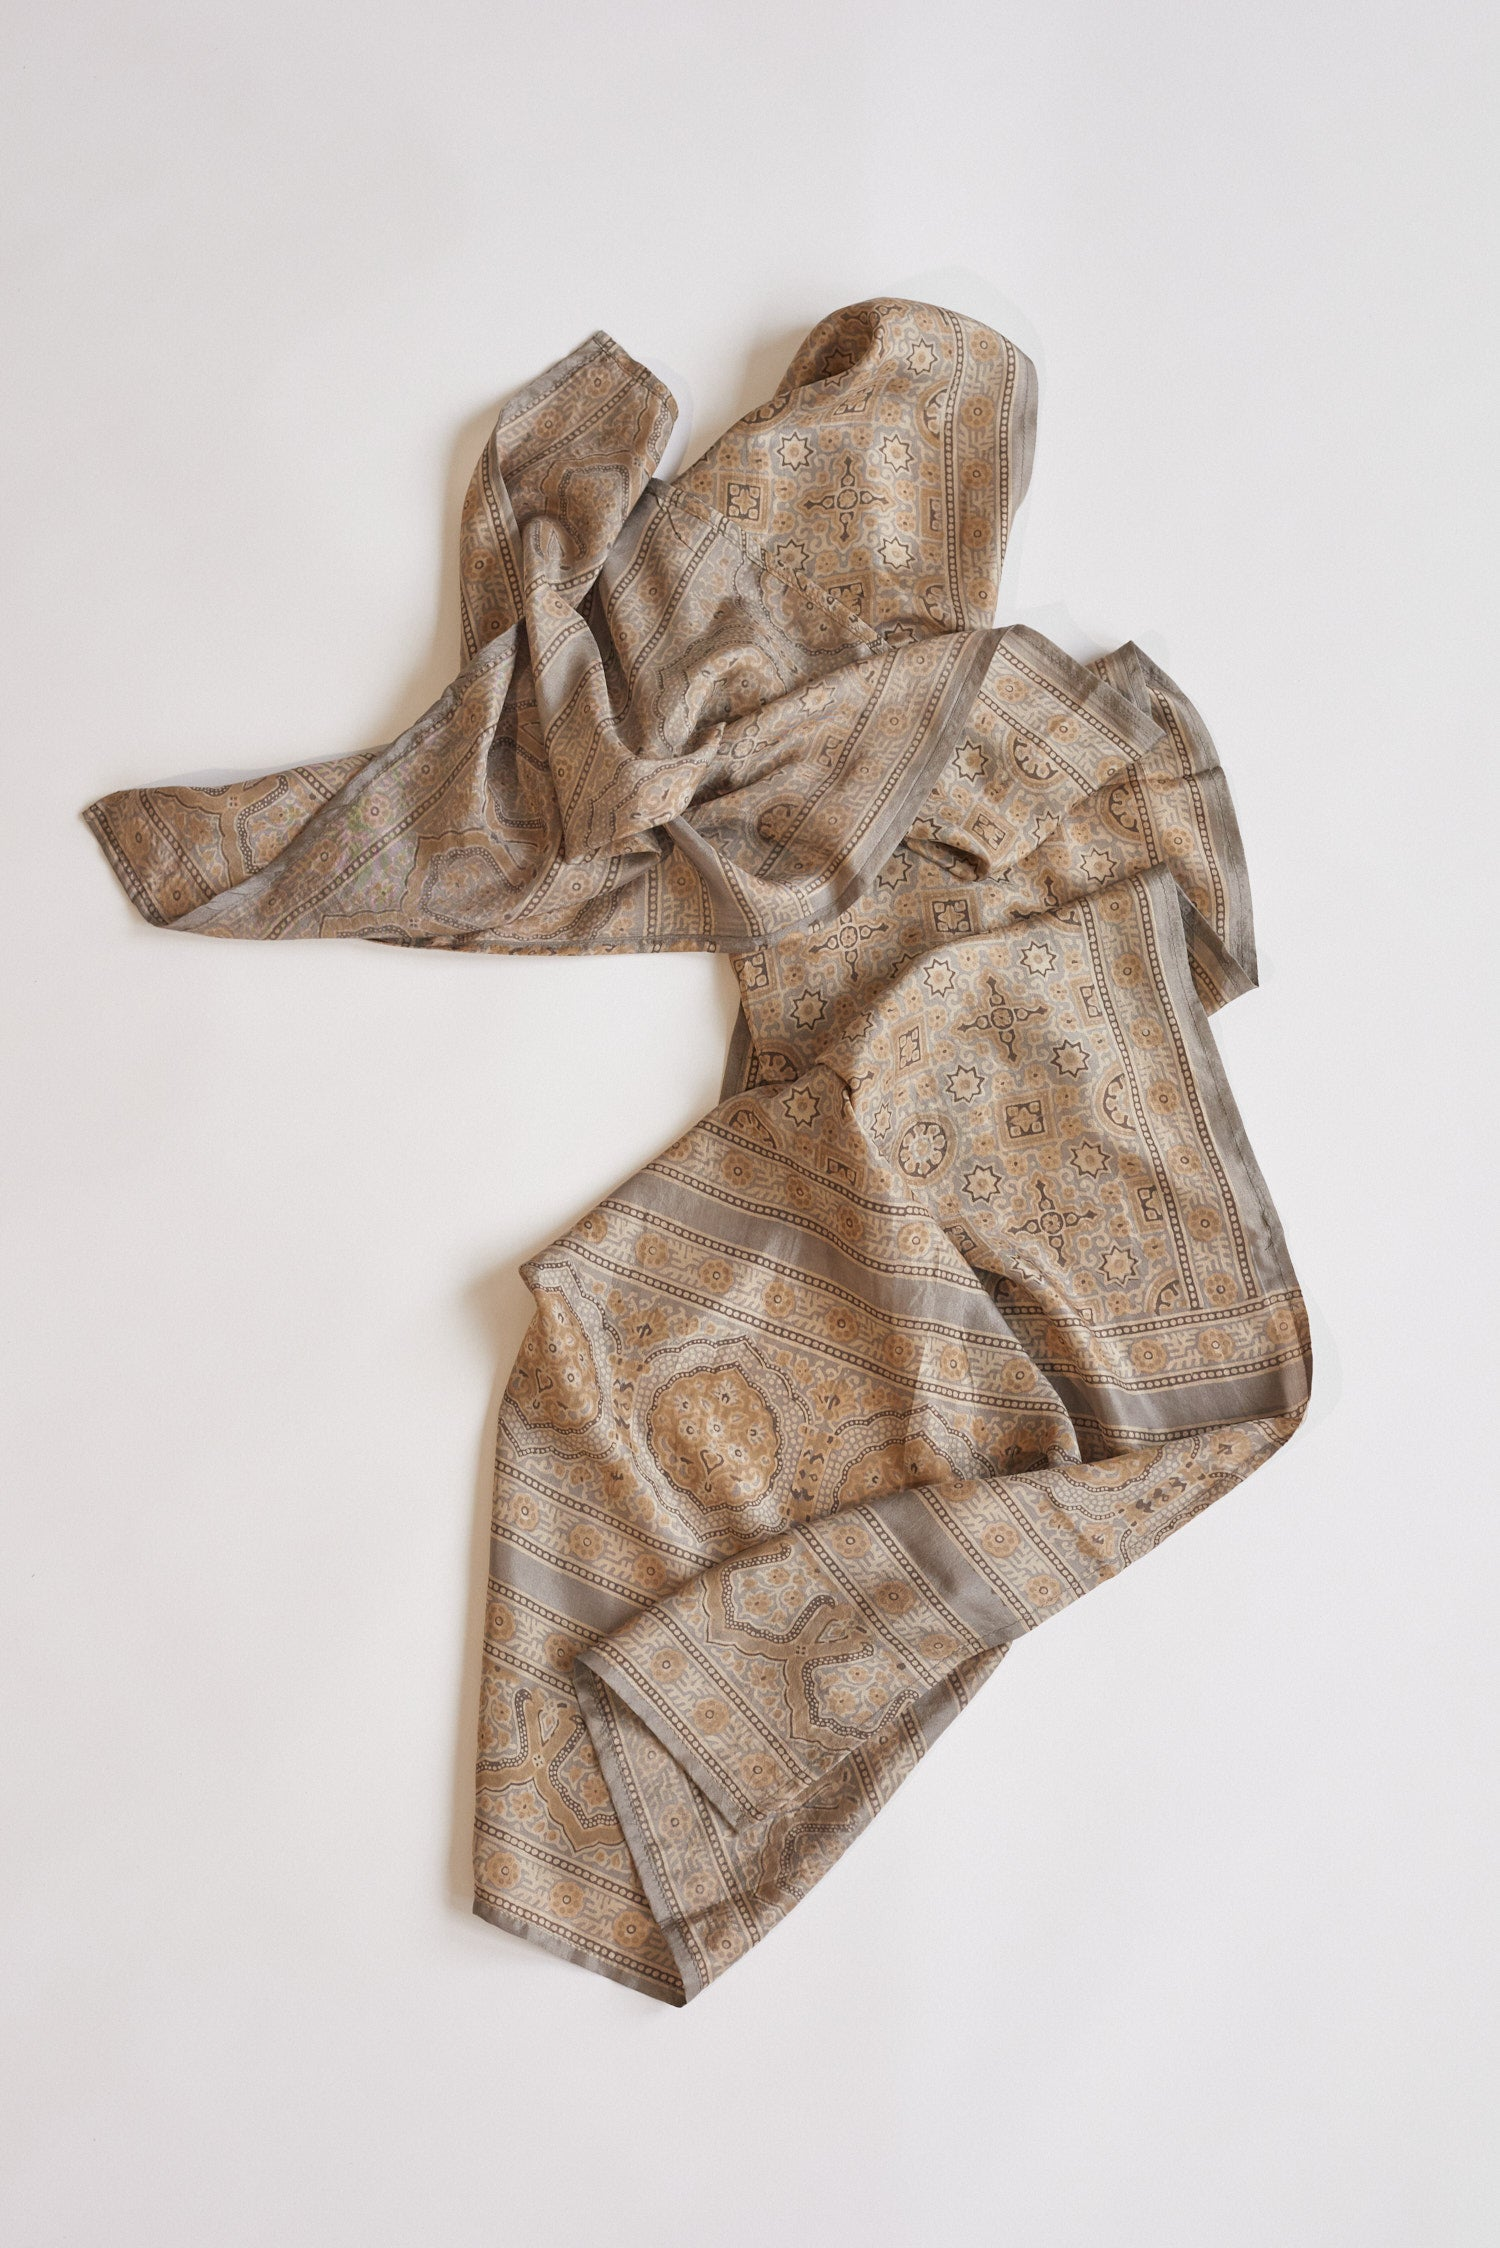 Koel, Dyed Silk Scarf Brown and Tan